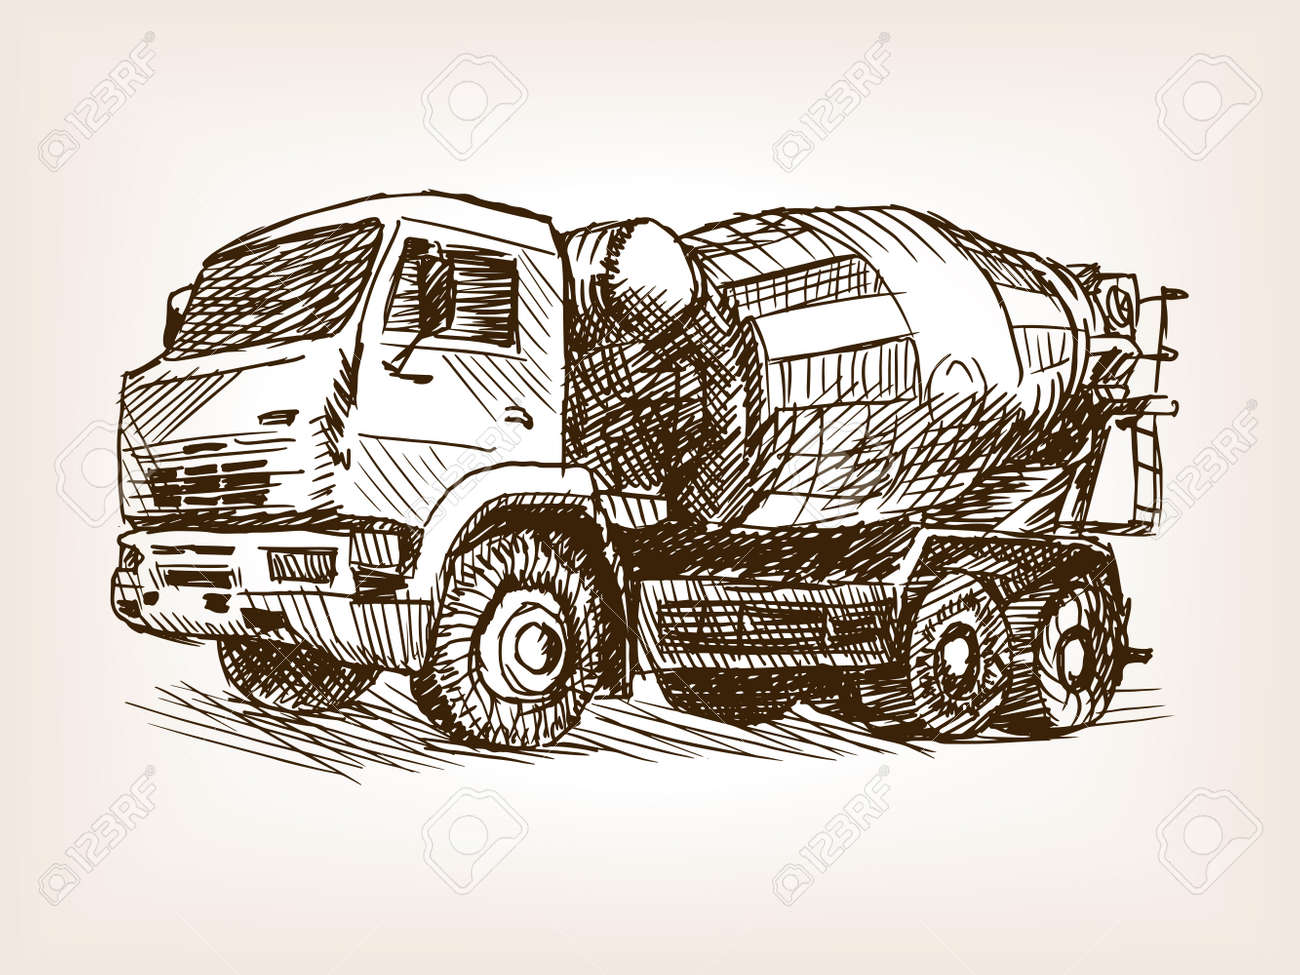 Concrete Mixer Truck Sketch Style Vector Illustration. Old Engraving ...